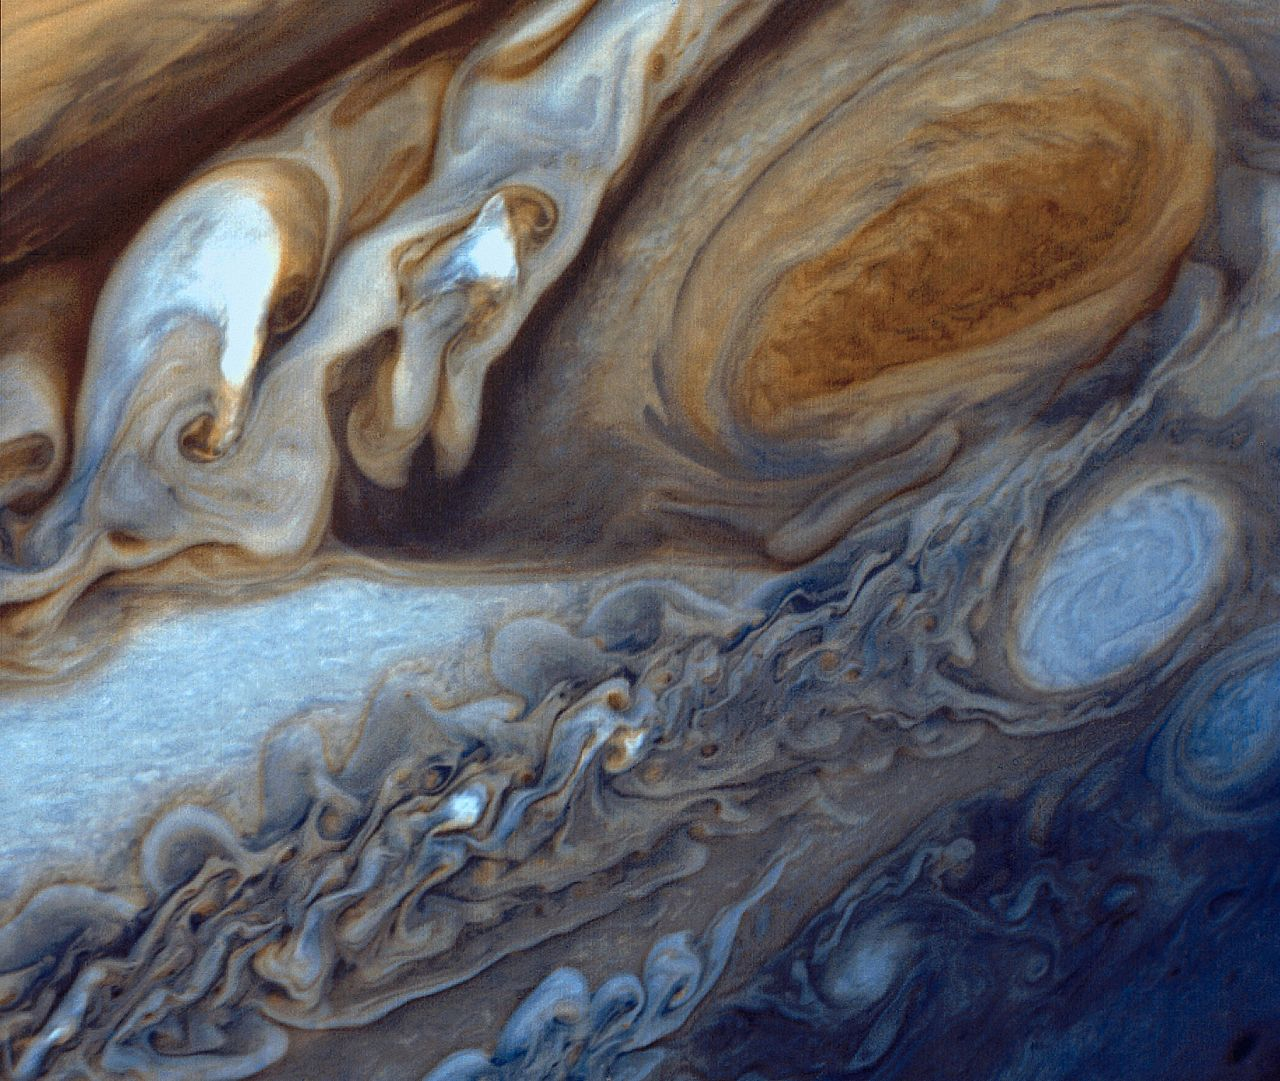 Image of Jupiter's Great Red Spot with turbulent cloud tops.